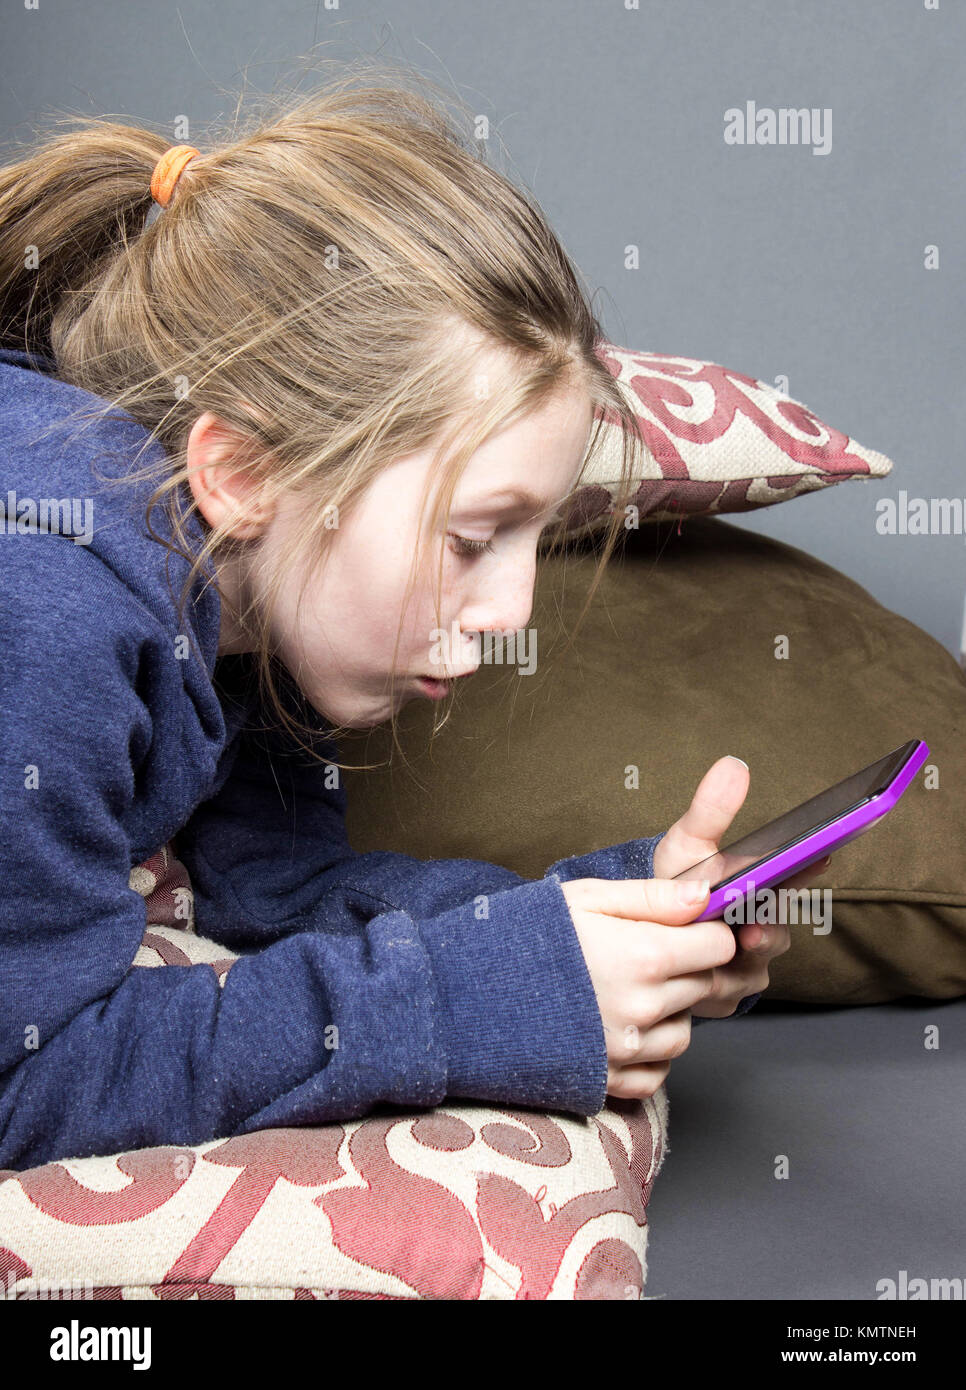 young child laying on stomach and pillows utilizing a hand held tablet, or the latest technology using wifi - Stock Image